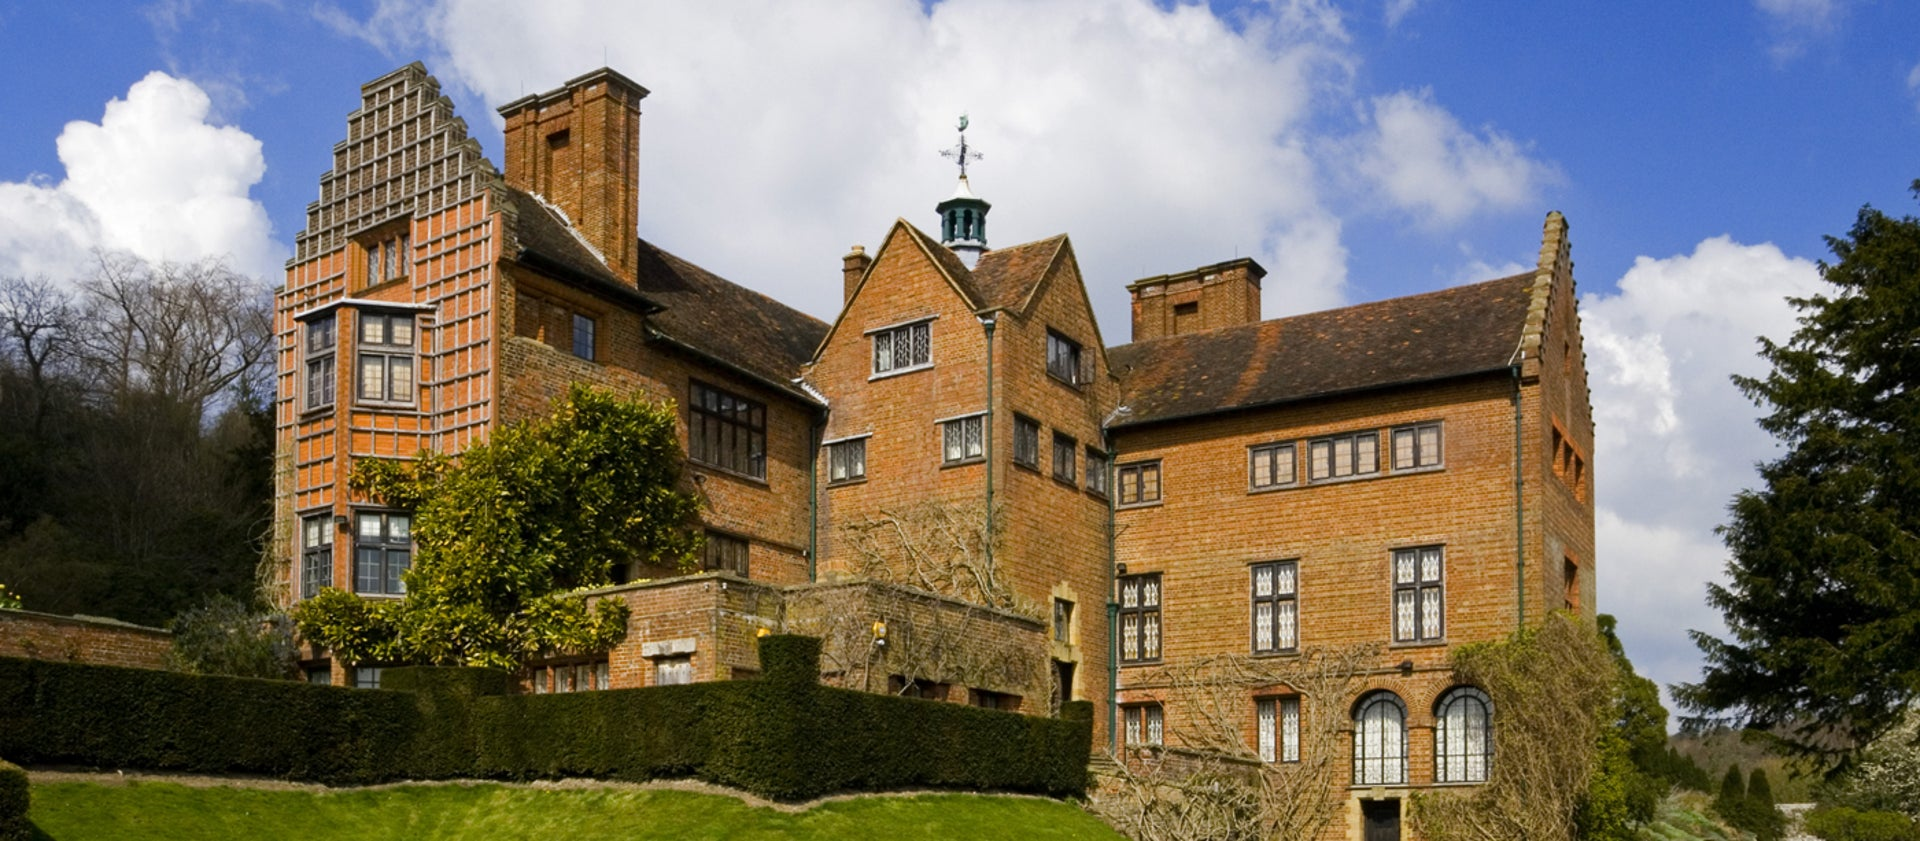 The home of Sir Winston Churchill - Chartwell, Kent | National Trust